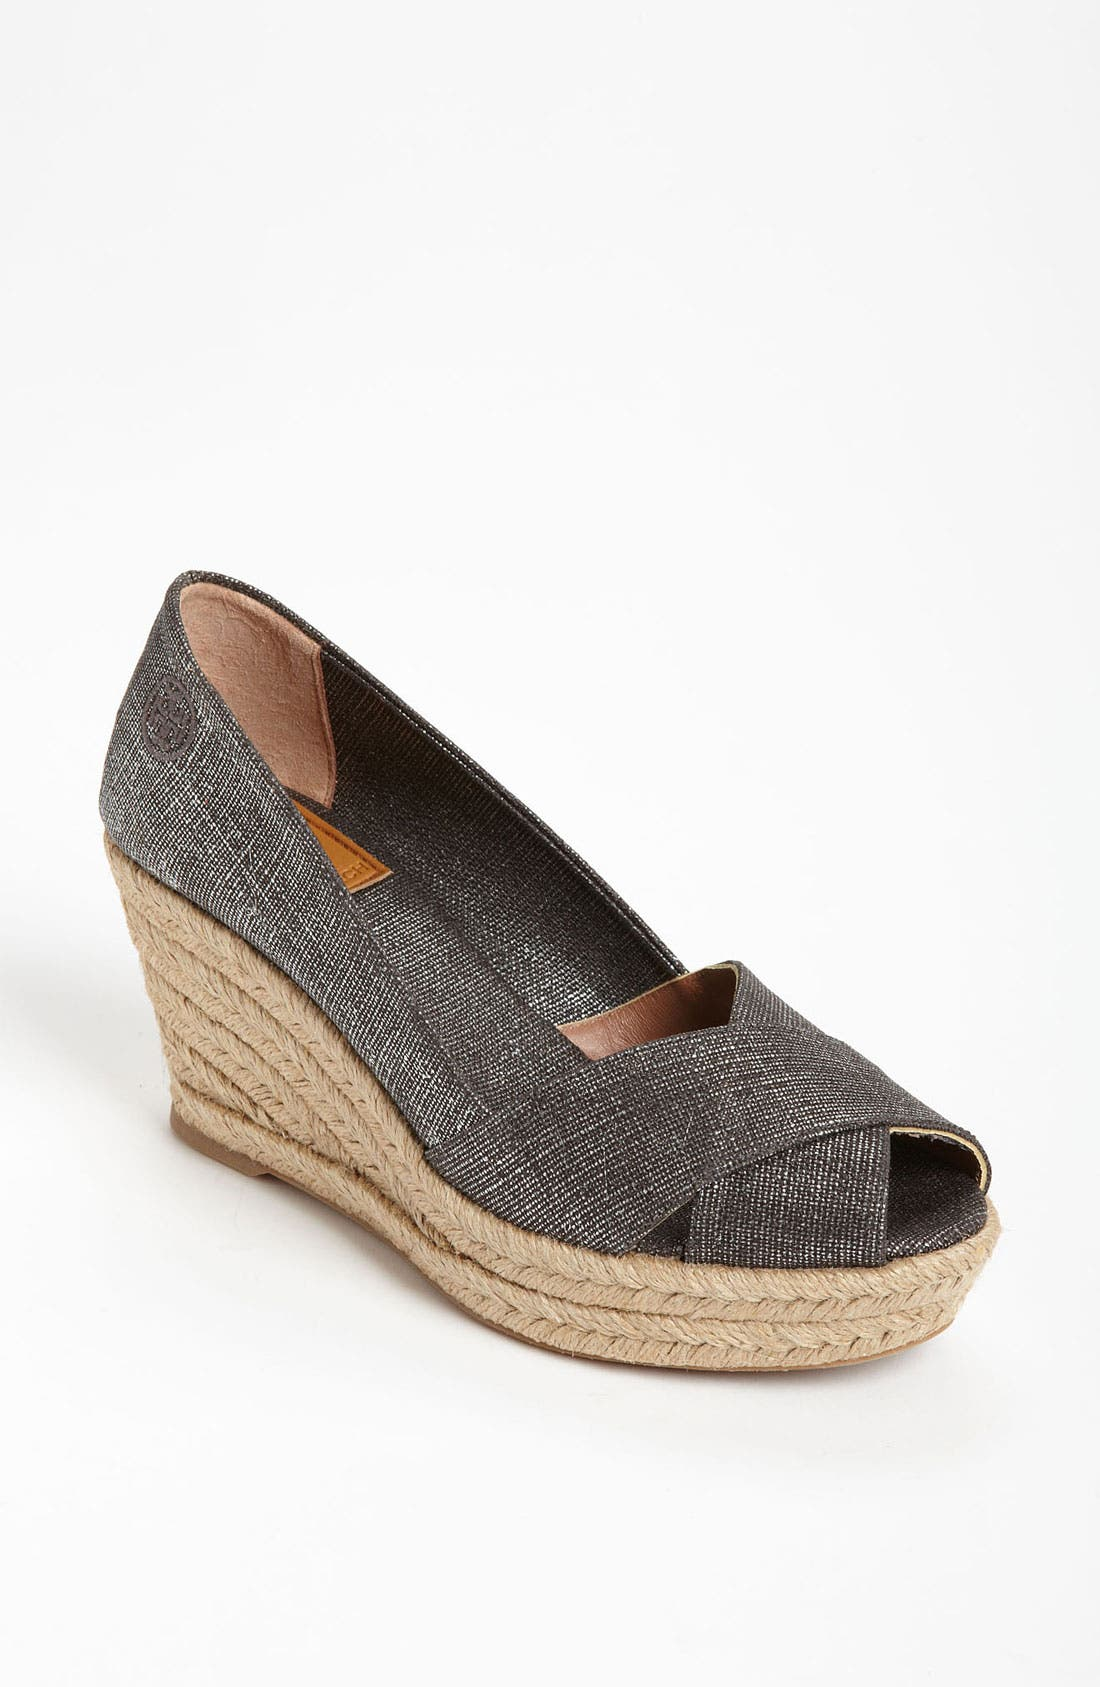 Main Image - Tory Burch 'Filipa' Wedge Espadrille